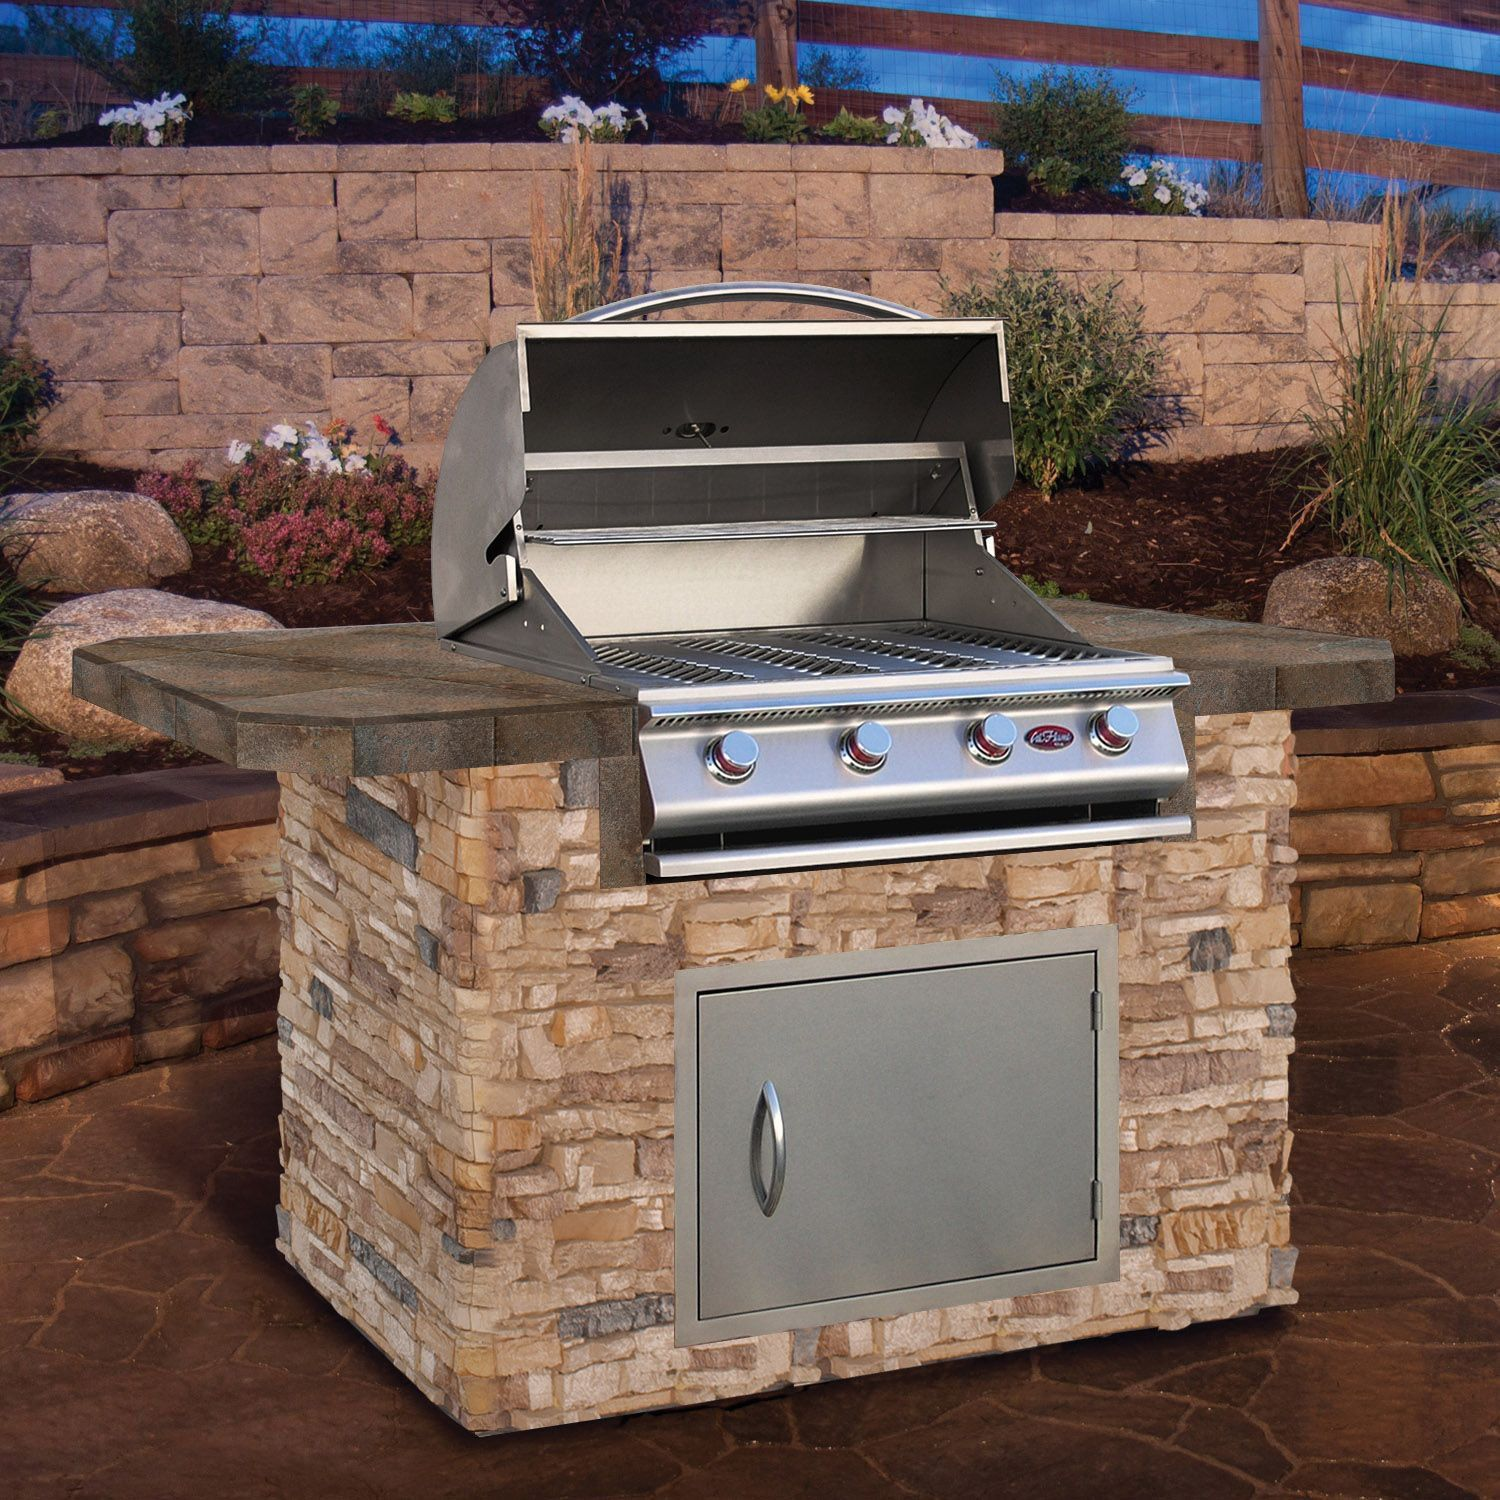 Cal Flame 6 Stone Bbq Island With Bar Depth Top And 4 Burner Gas Grill Stone Bbq Bbq Island Backyard Grilling